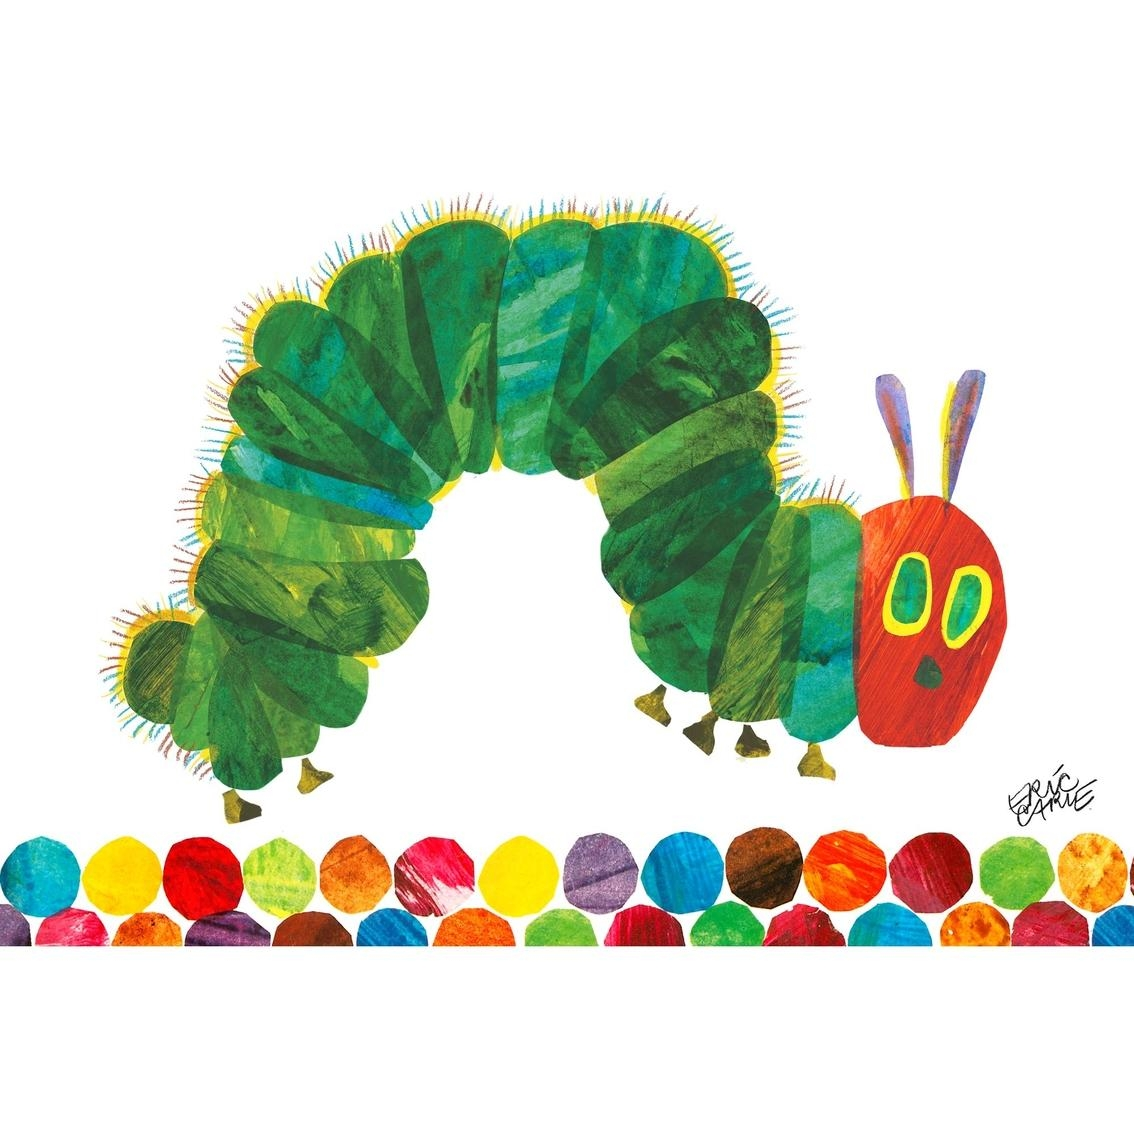 Greenbox Art 24 X 18 Eric Carle's The Very Hungry Caterpillar Within The Very Hungry Caterpillar Wall Art (Image 9 of 20)